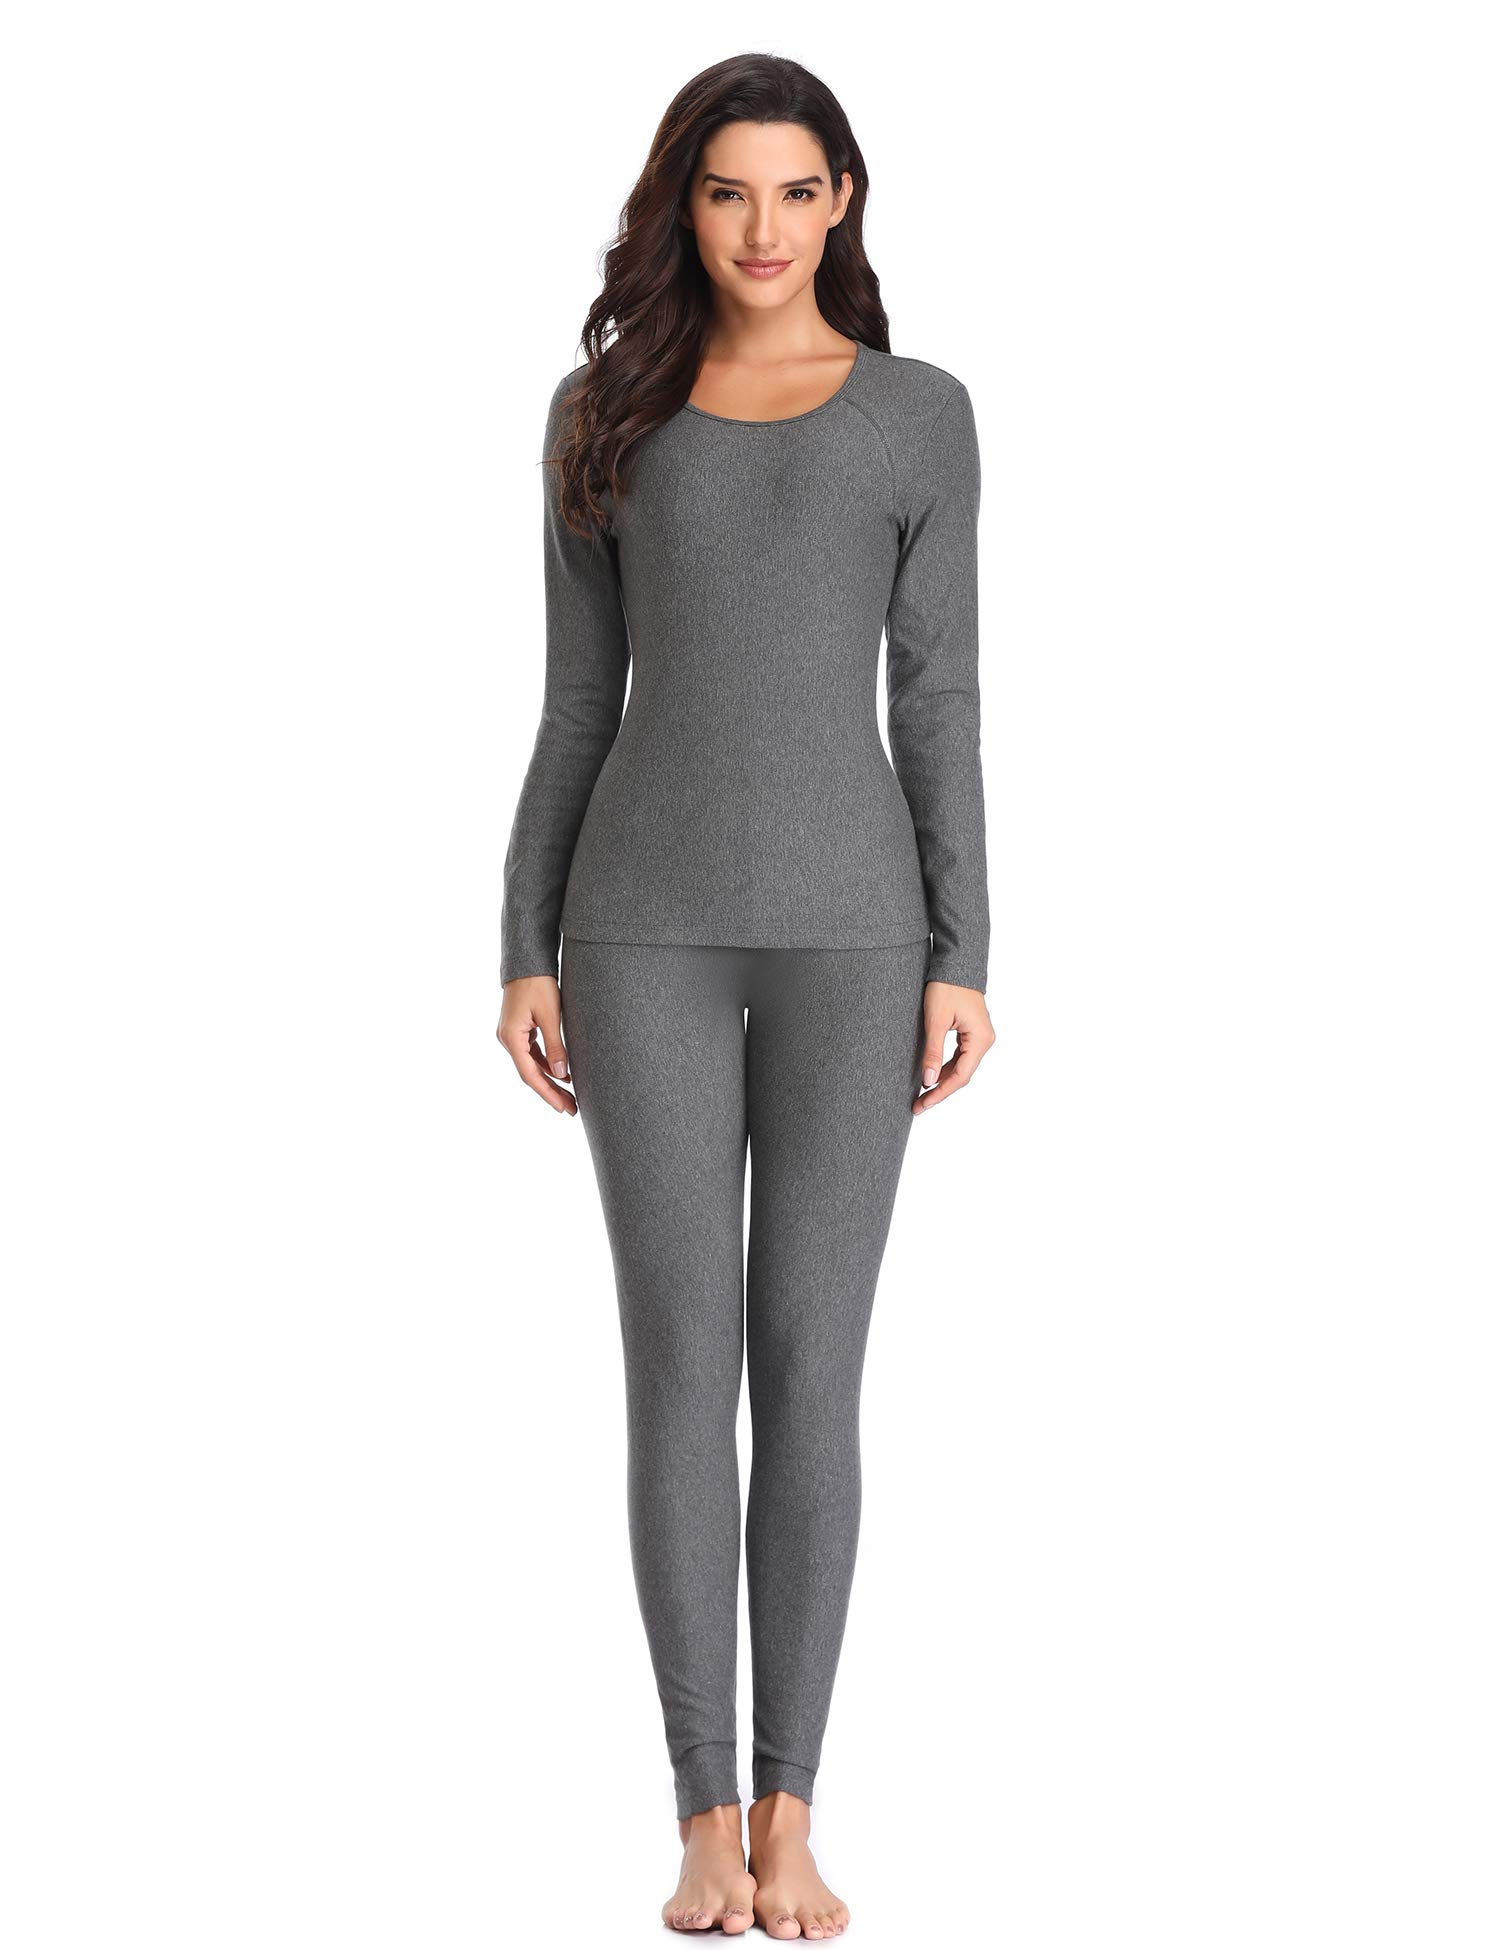 d257324f971 LALAVAVA Lusofie Thermal Underwear for Women Cotton Long Johns Set Ultra- Soft Base Layer product